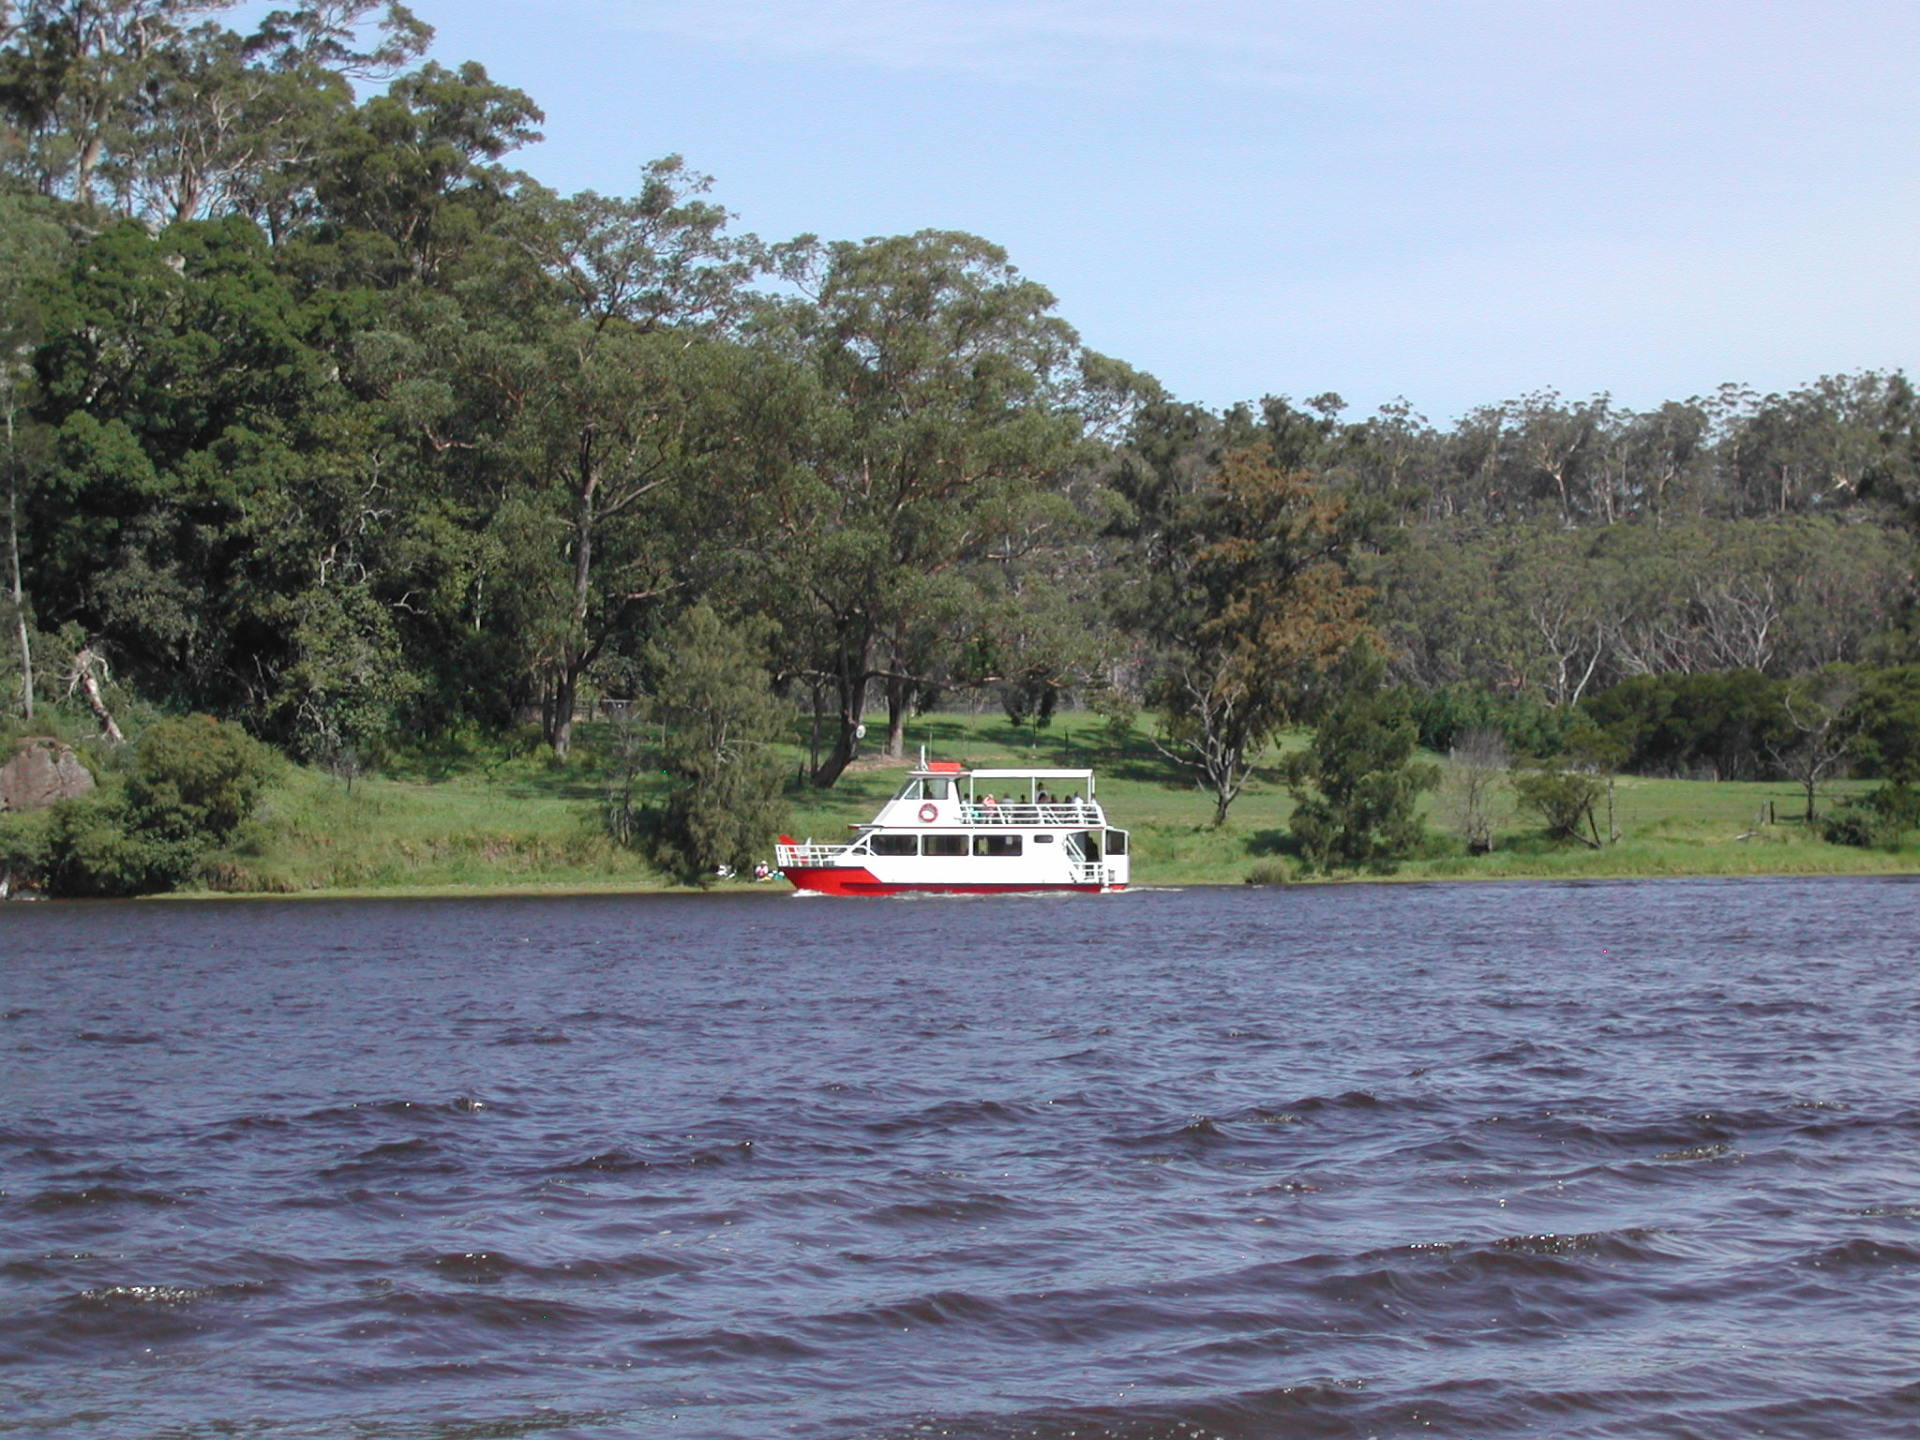 Happy Boating on the Shoalhaven River